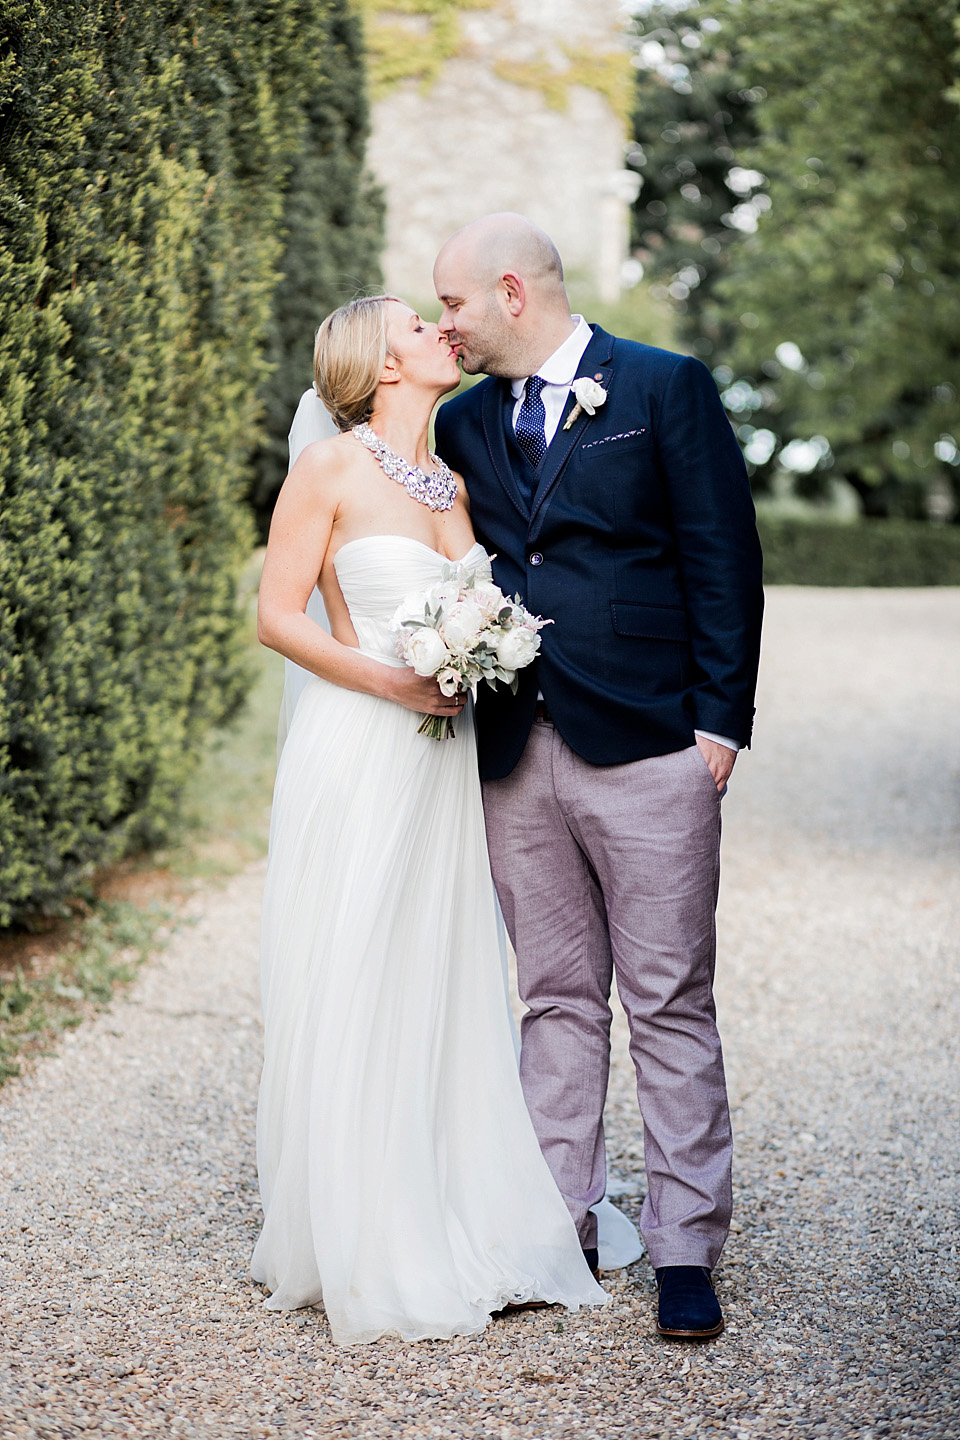 A Maria Hohan Dress and Blush Pink Maids for a Relaxed and Elegant Outdoor Wedding in France